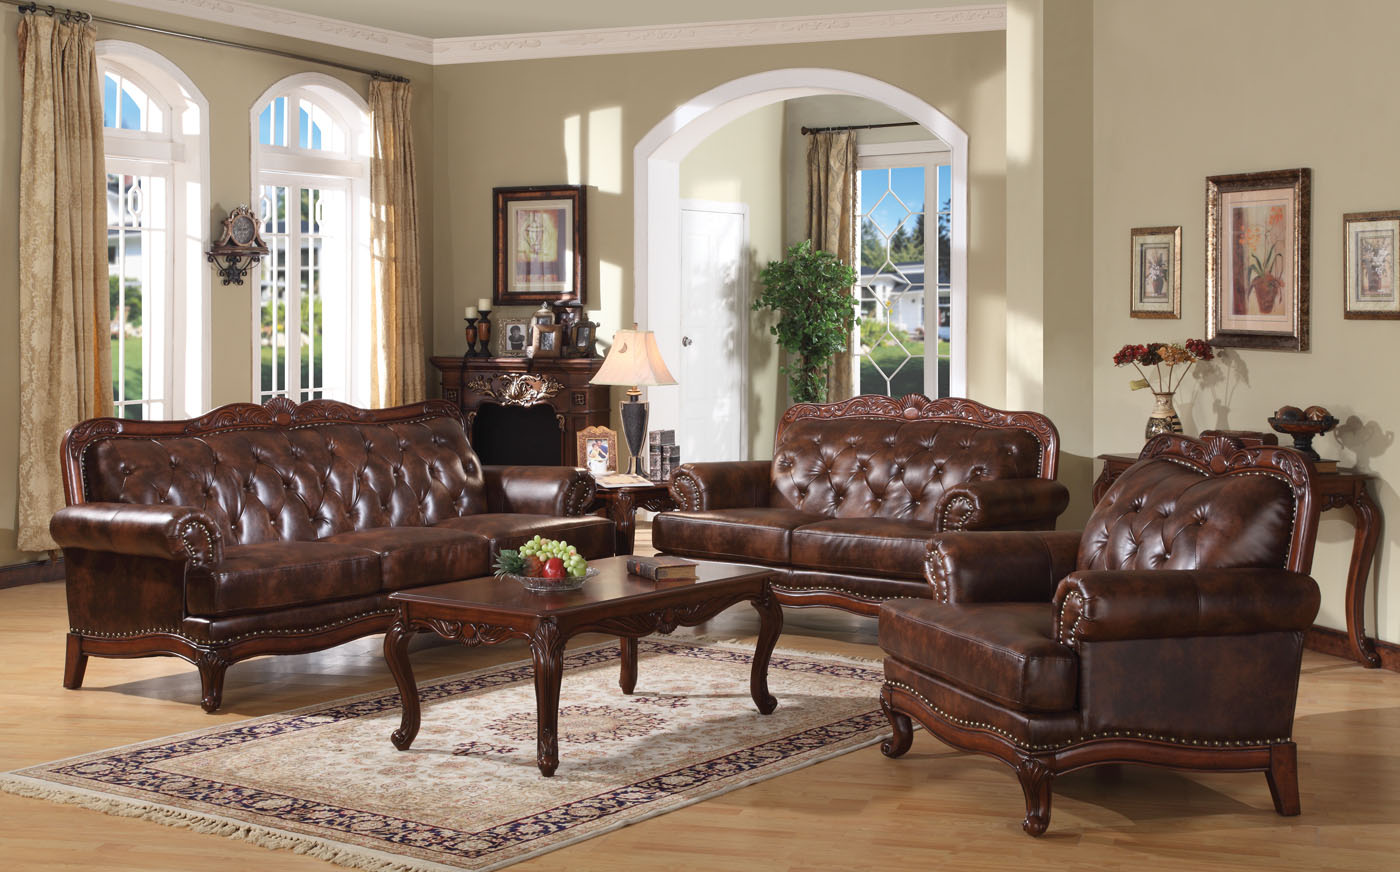 Birmingham brown button tufted leather sofa set carved